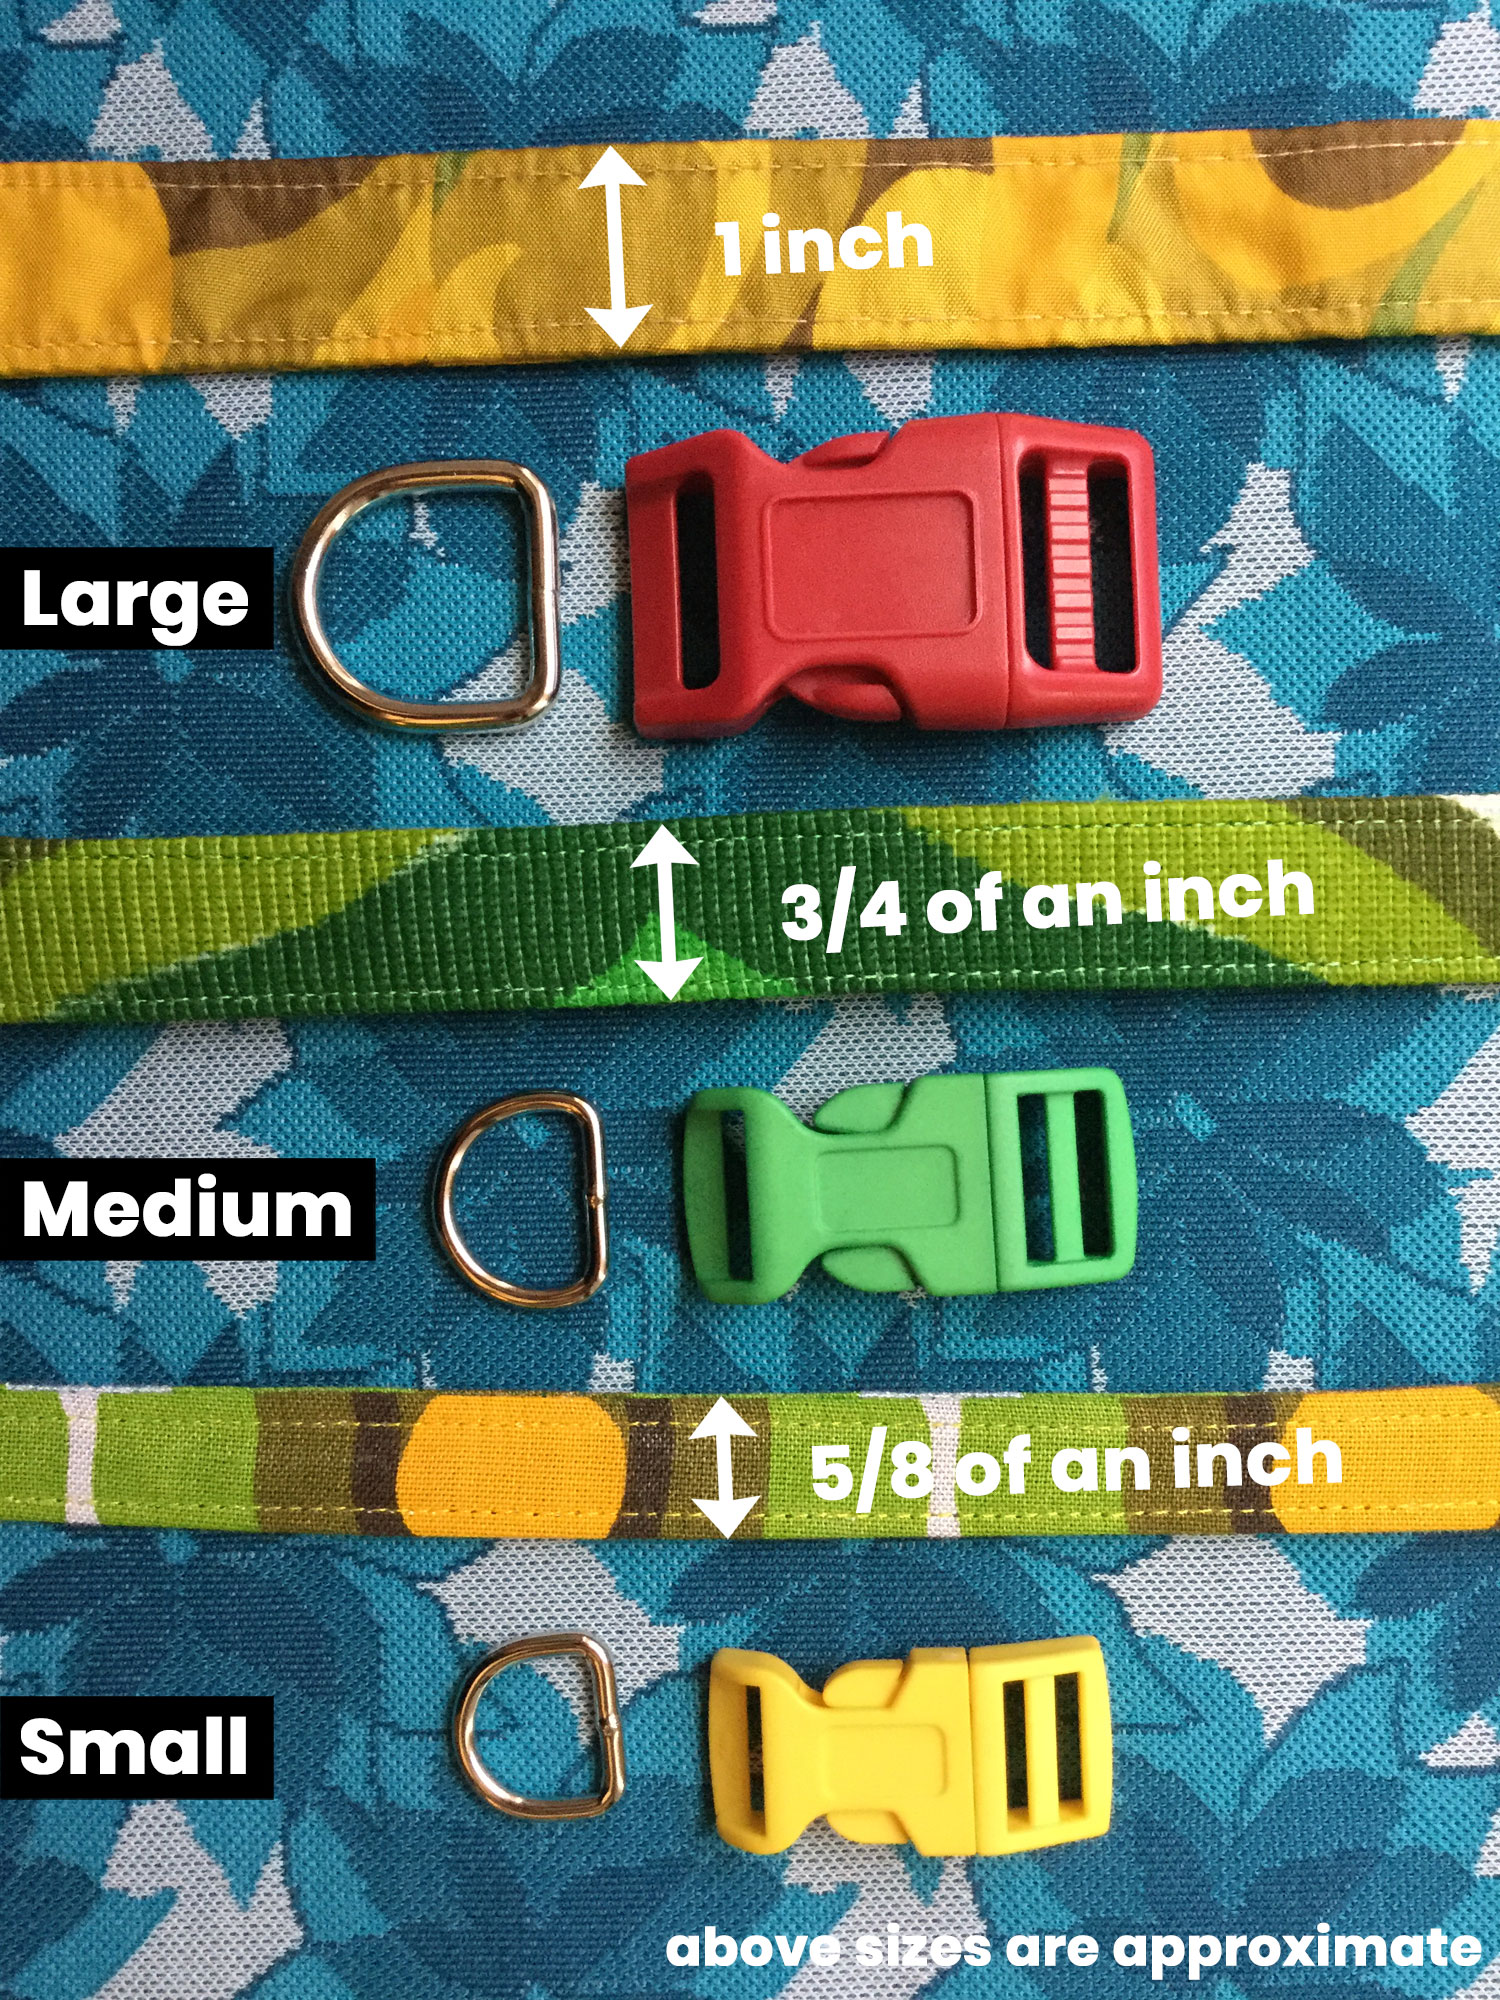 Collar thickness for retro dog collars